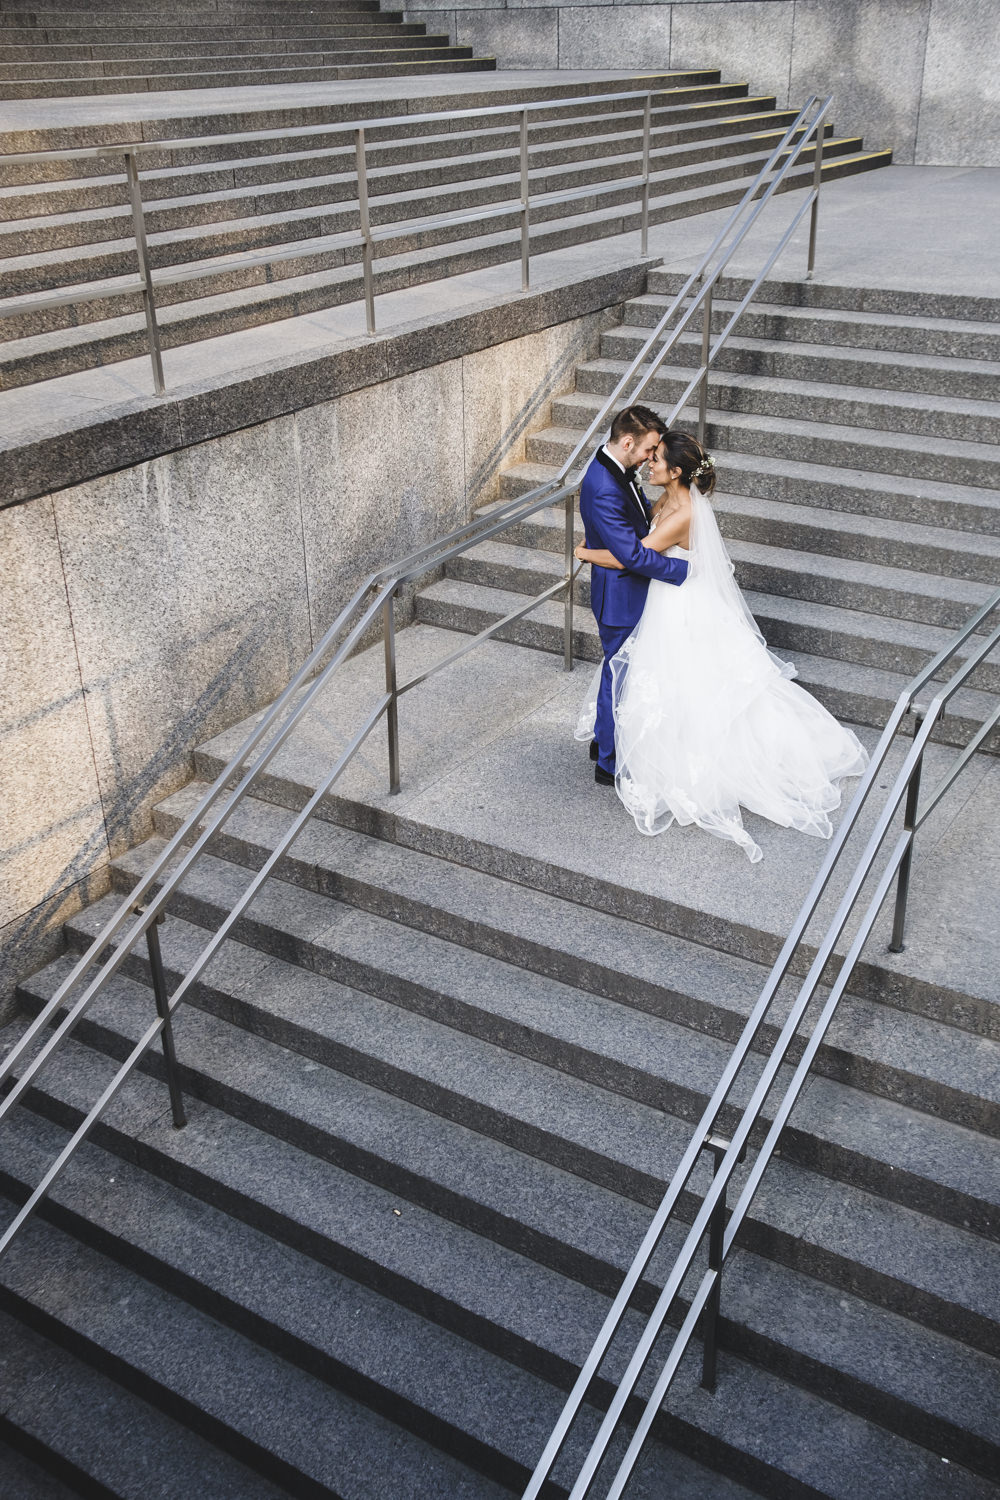 bride and groom portrait on stairs in downtown toronto